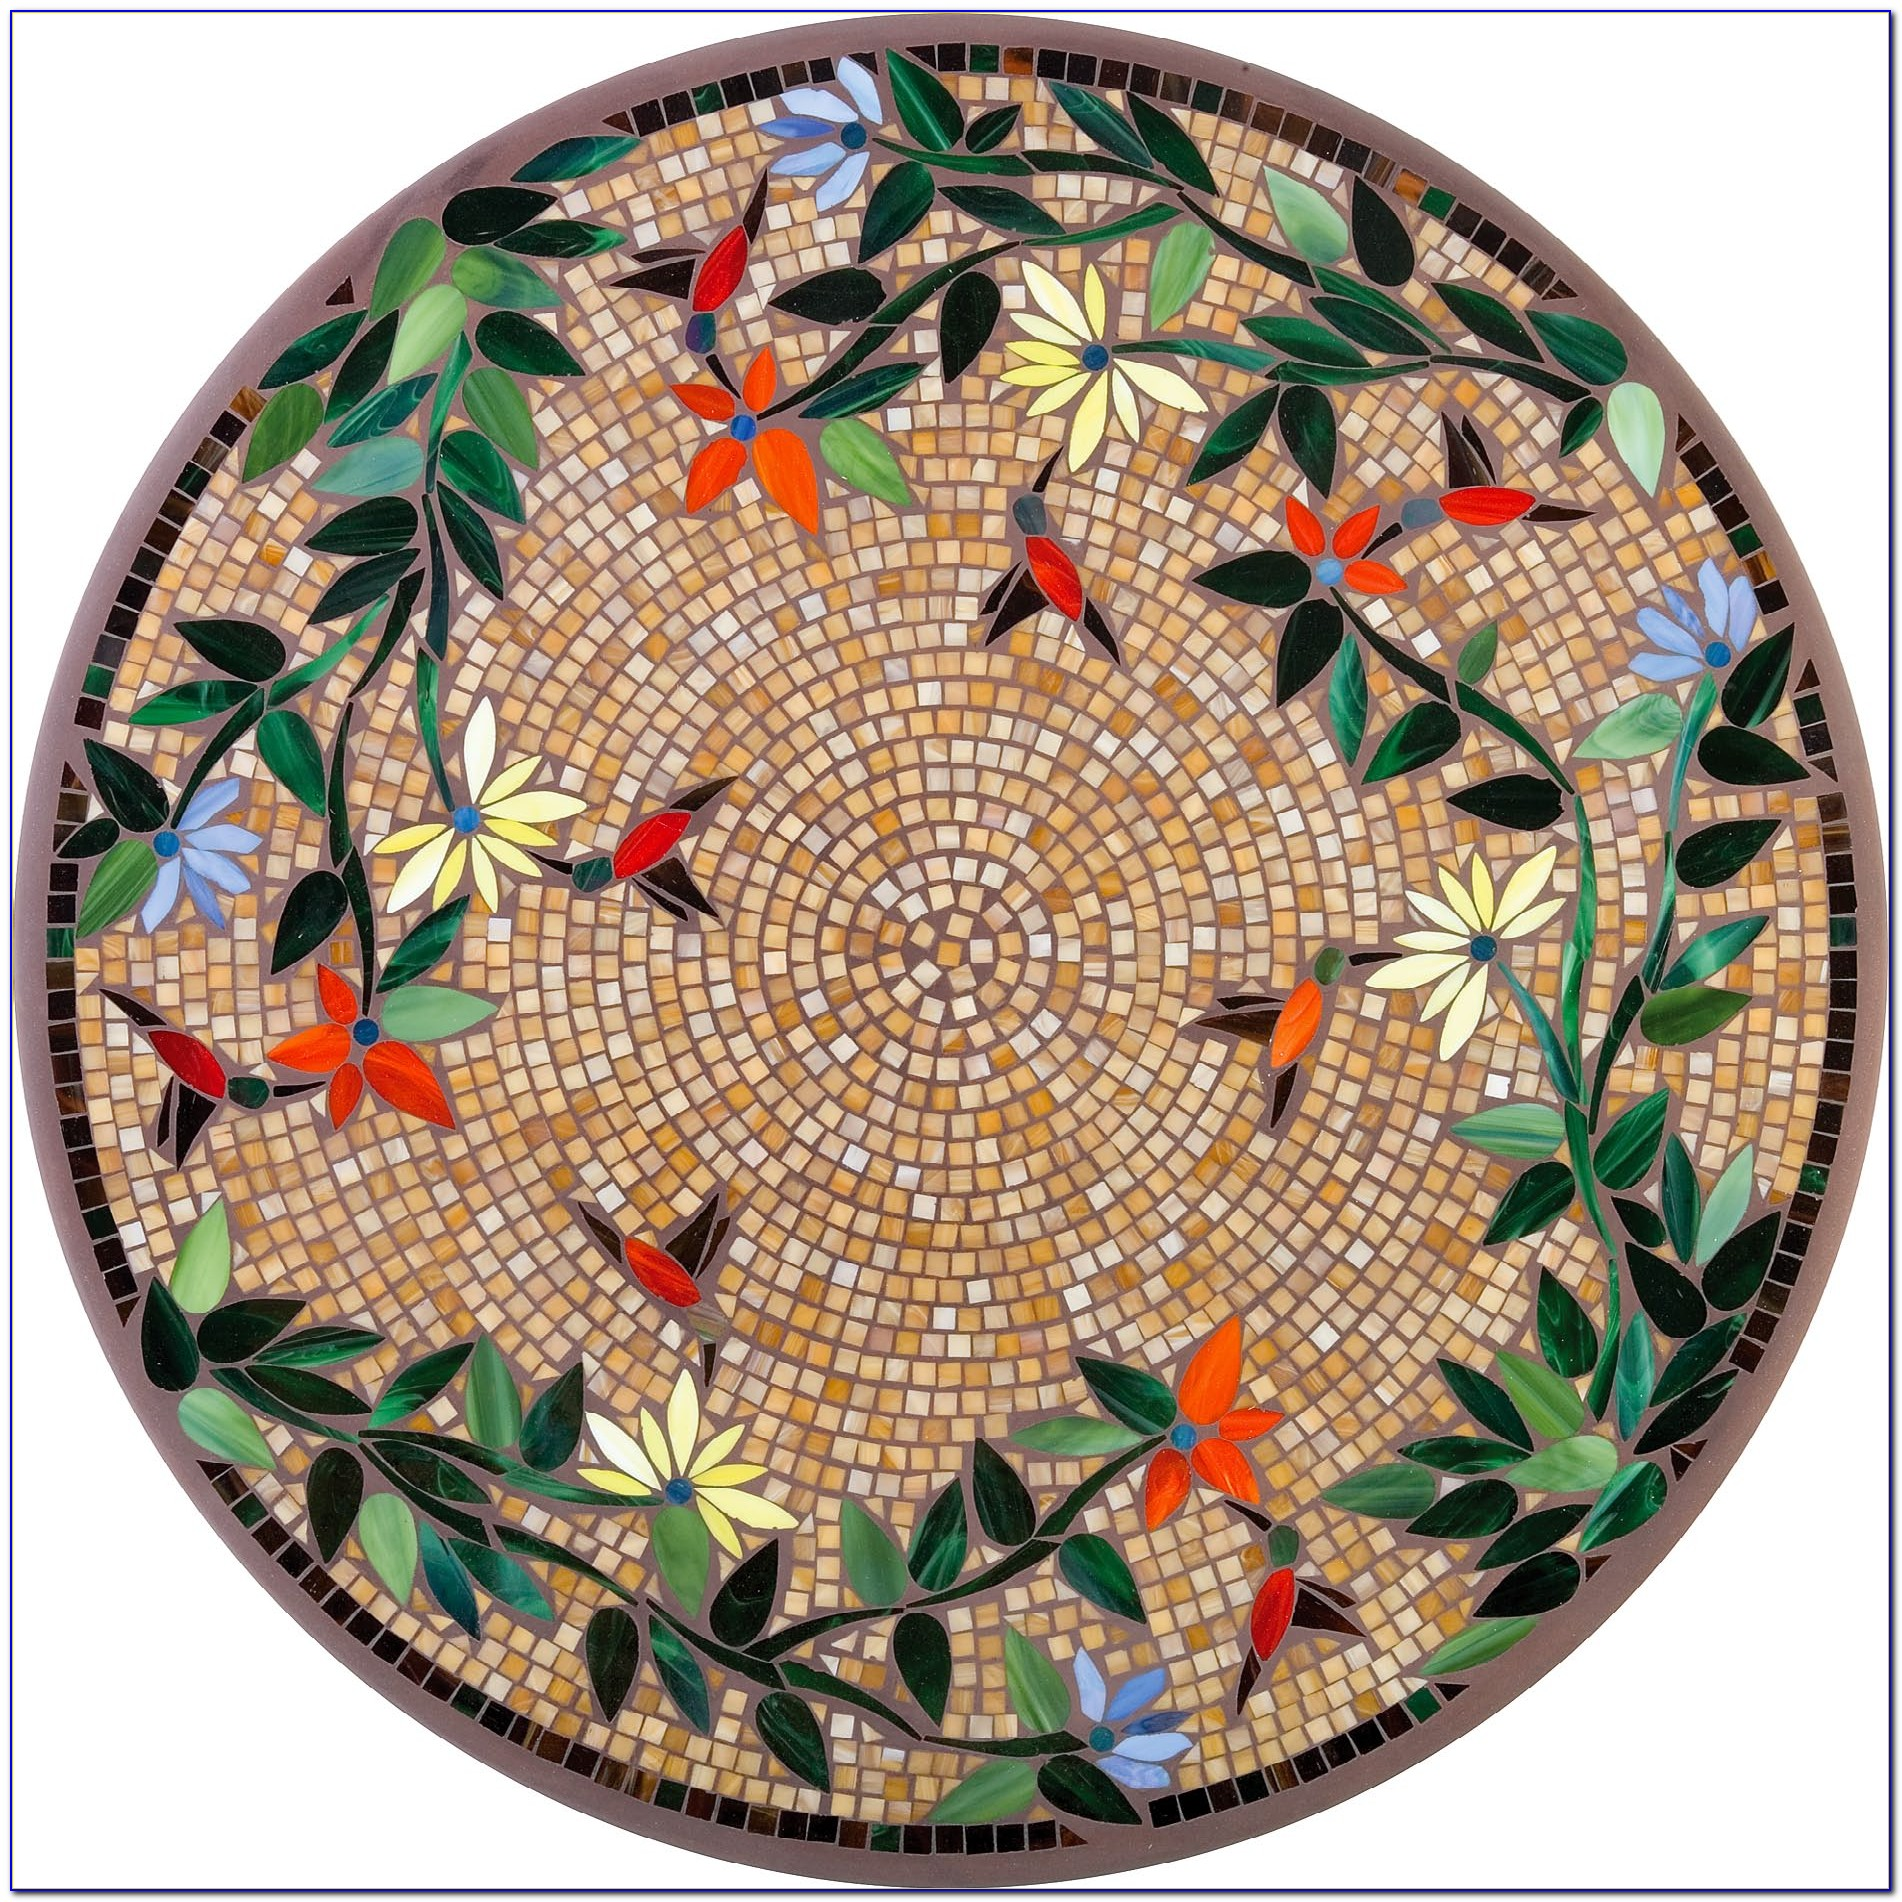 Round Mosaic Tile Patterns: Mosaic Round Table Top Patterns Download Page